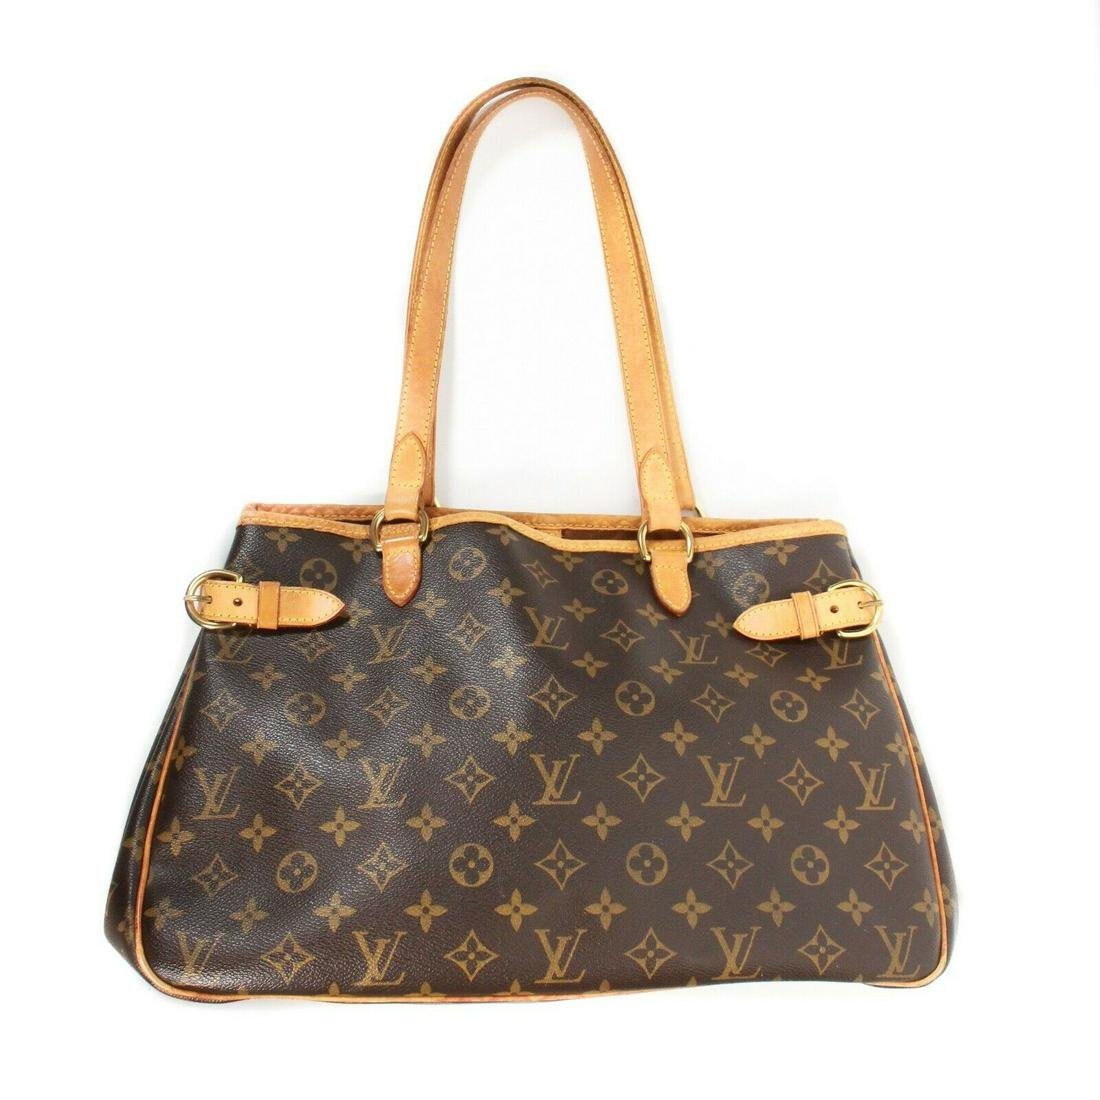 Louis Vuitton - Horizontal Batignolles Tote - Large